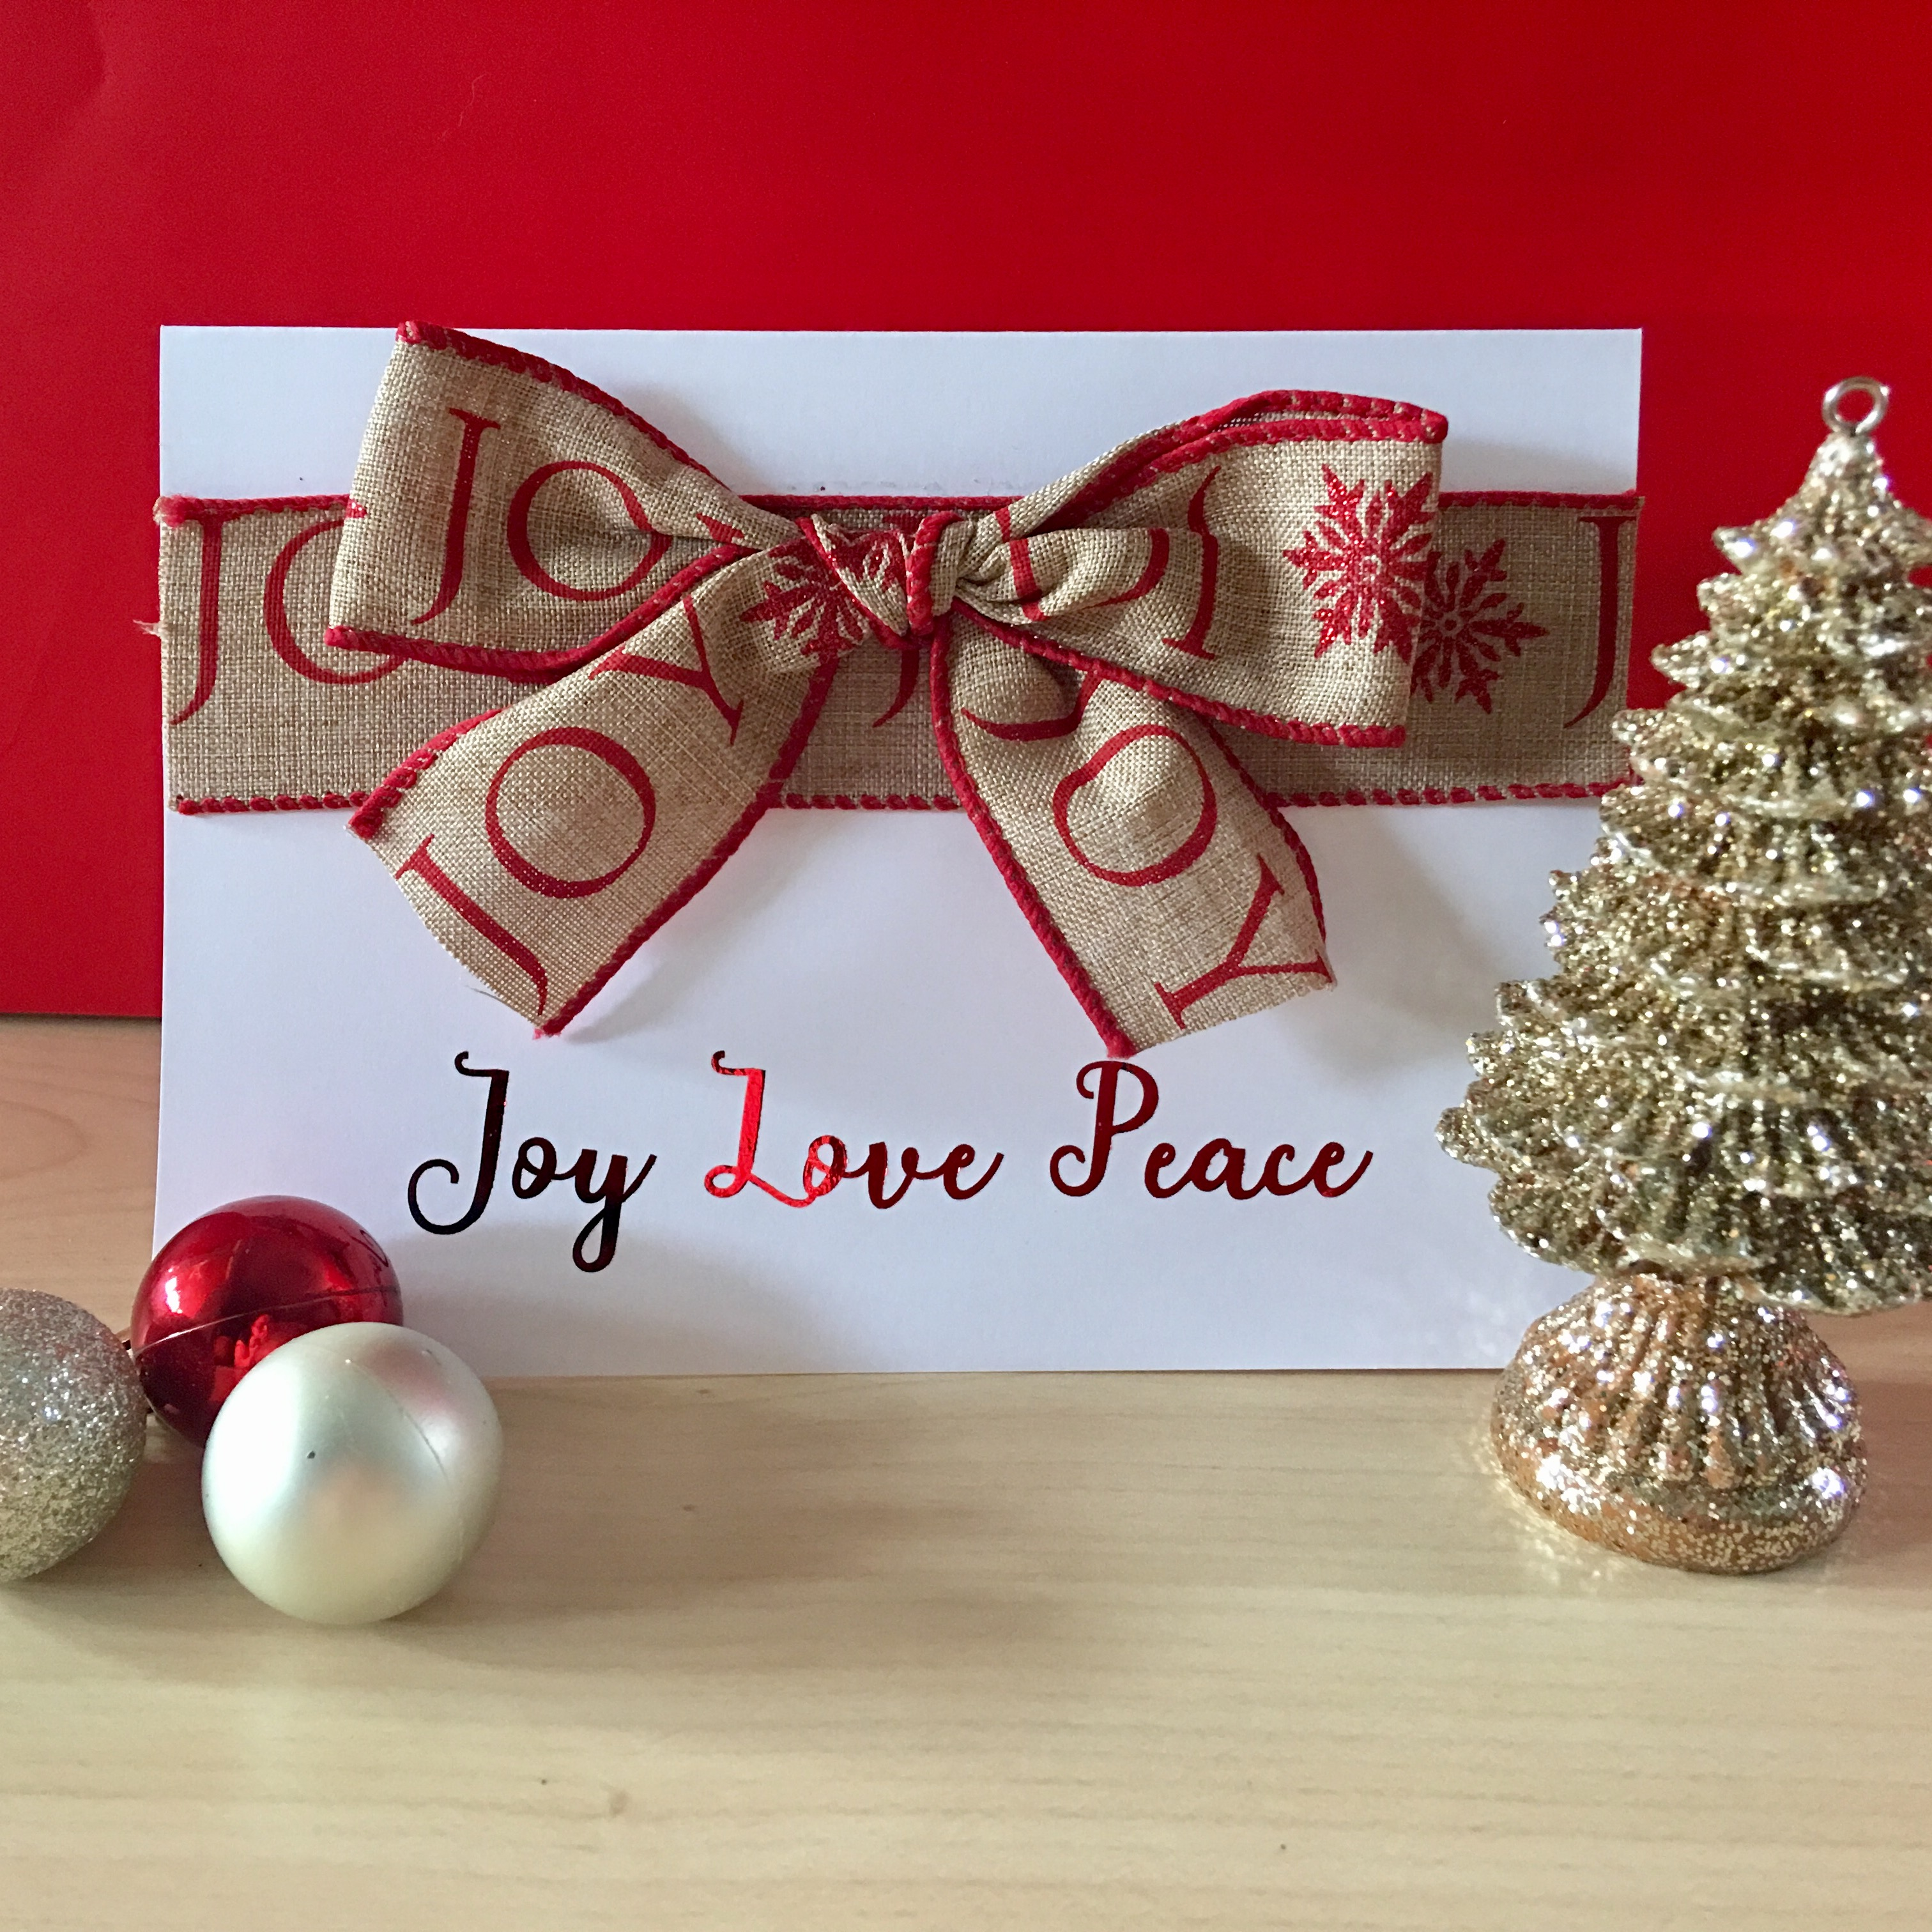 Forget the Christmas Text - Joy Love Paper\'s Handmade Cards Will Wow ...